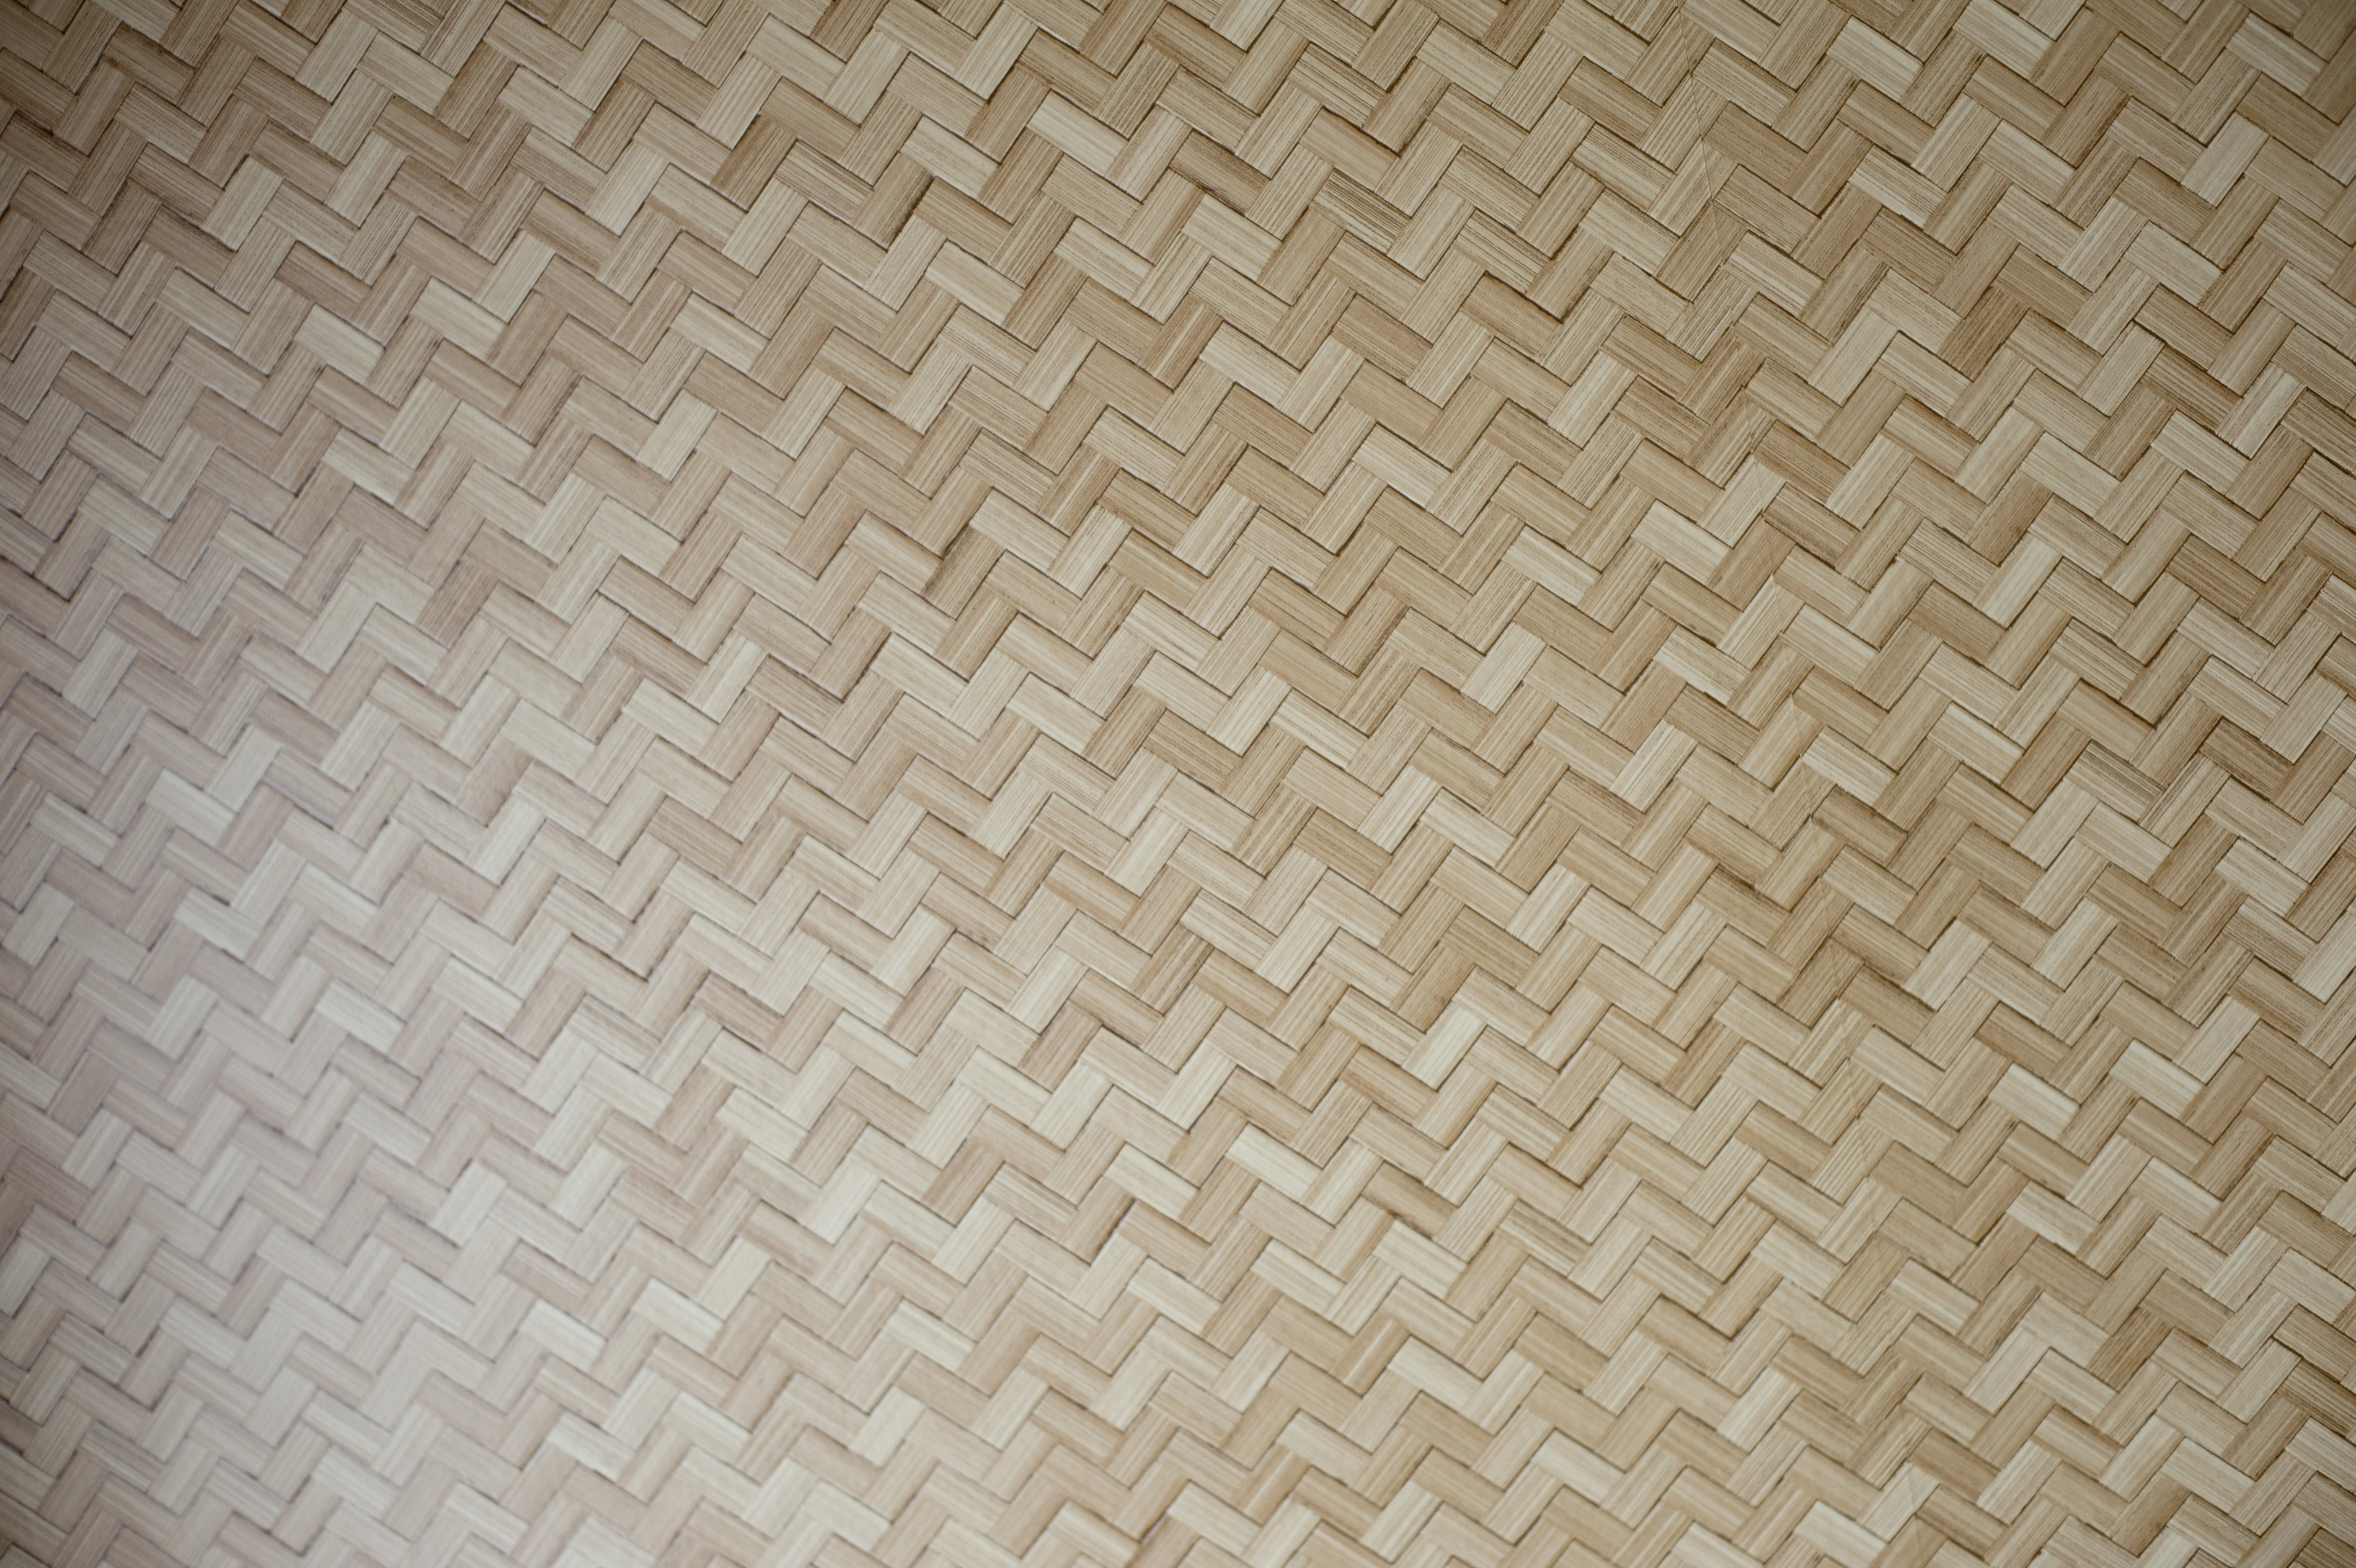 Wooden Texture Woven bamboo used in c...